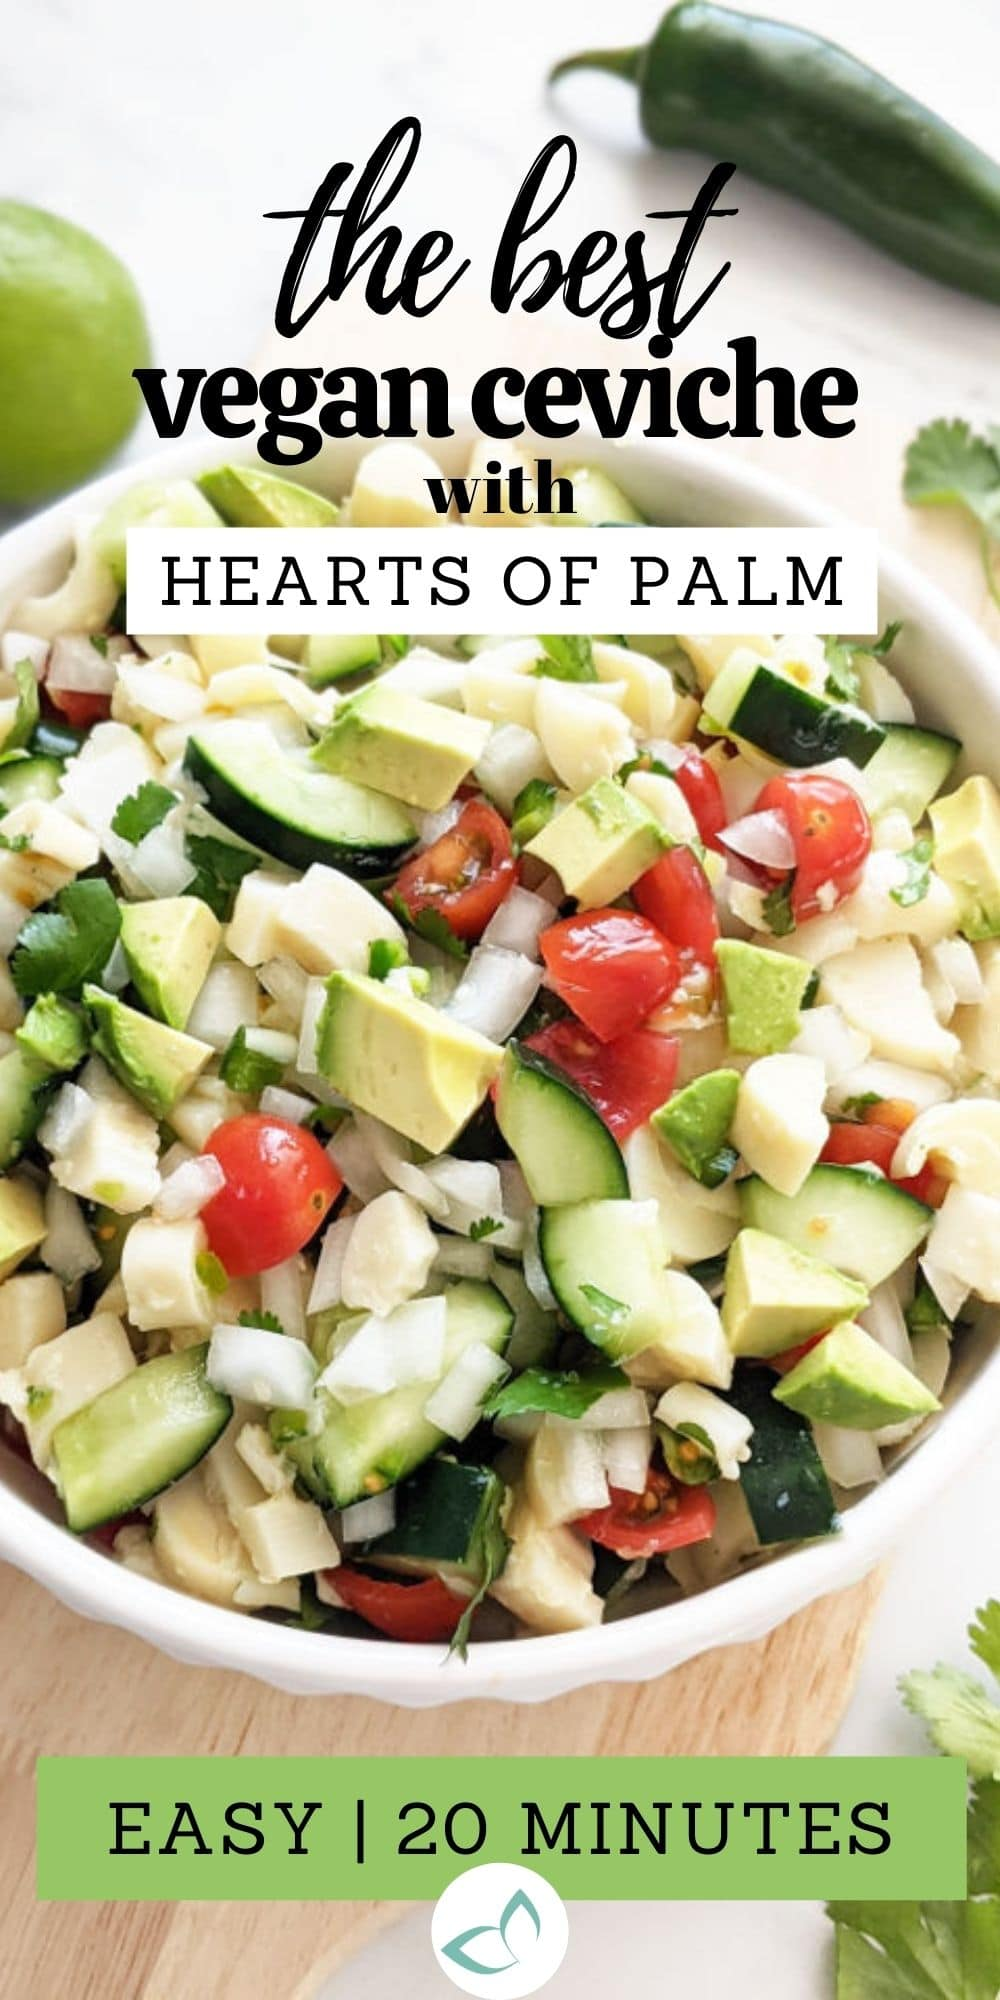 This healthy palmito ceviche is made using hearts of palm—the perfect seafood substitute! Tossed with fresh lime juice, this dish is refreshing and zesty! Perfect as an appetizer or main dish served with tortilla chips, tostadas or rice.  Palmito Salad | Vegan Ceviche Recipe | Hearts of Palm Salad | Plant Based Ceviche